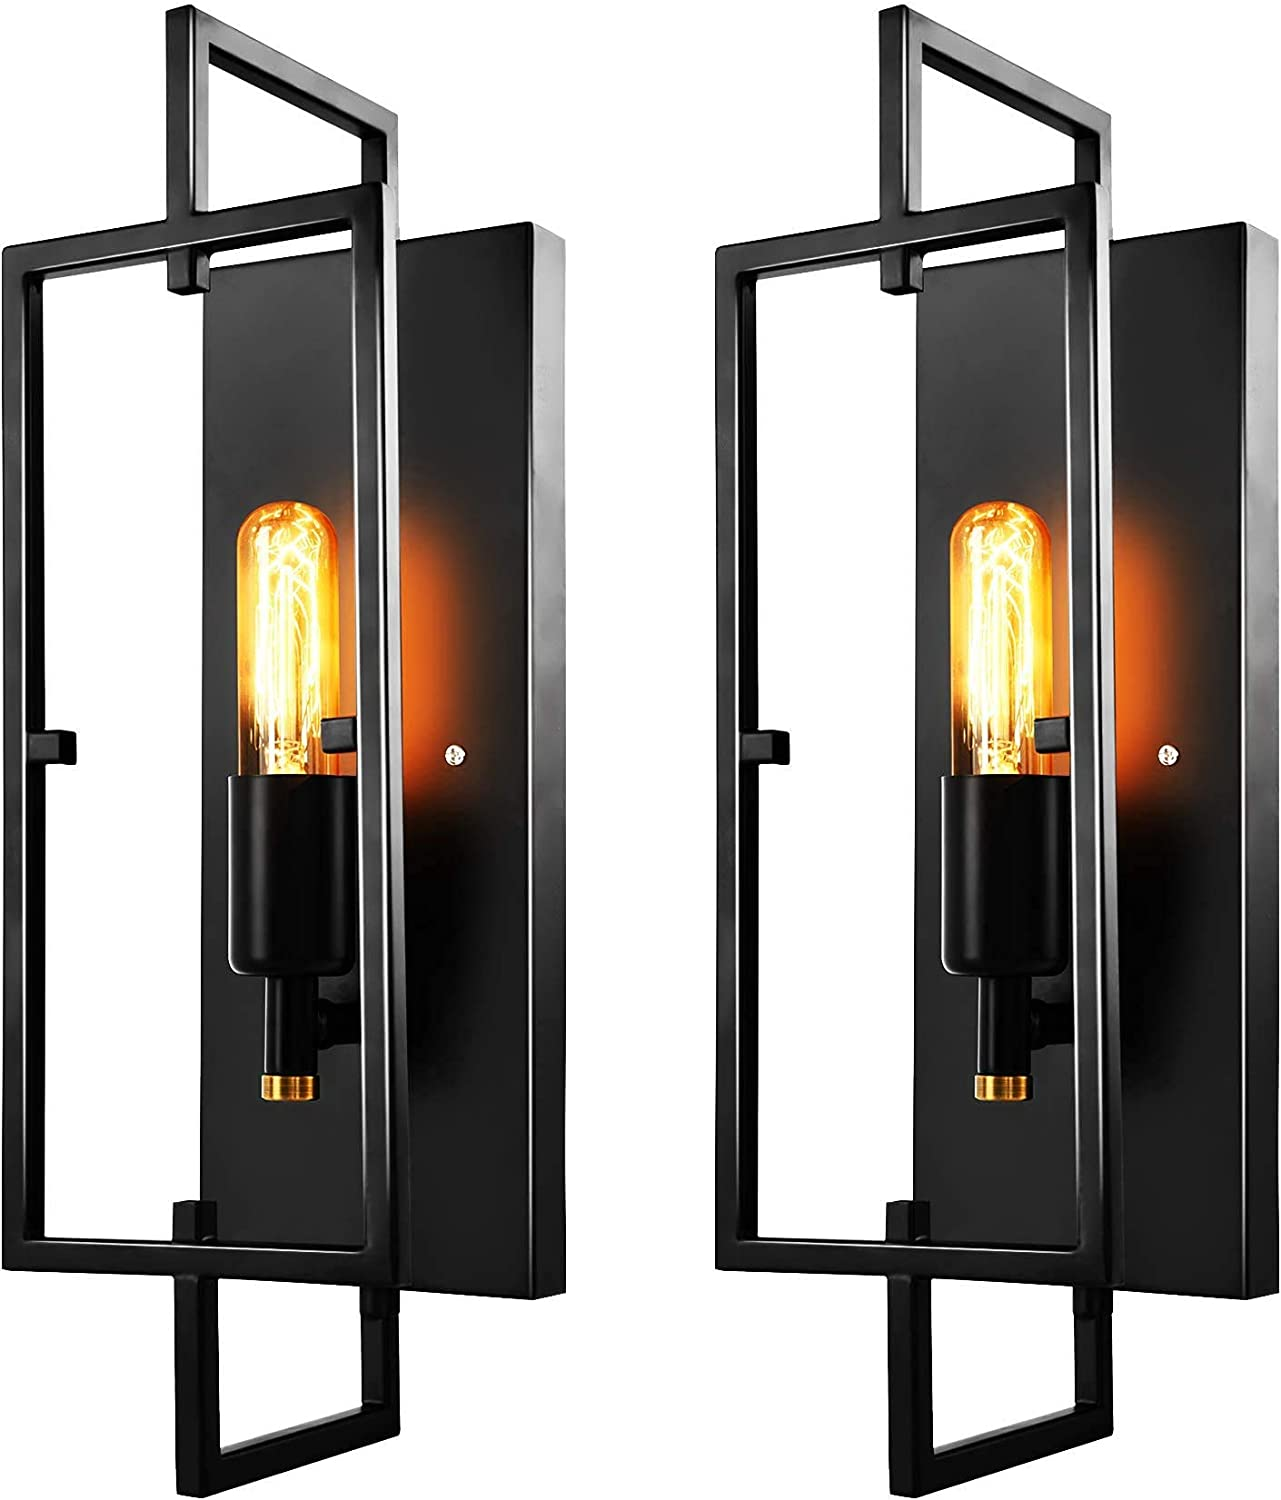 Otdair Wall Sconces Set of 2, Rustic Wall Lights Fixture for Living Room Indoor, Black Industrial Wall Sconce Lighting Home Decor Vintage, for Hallway, Bedroom, Bathroom, E26 Base, Bulbs Included